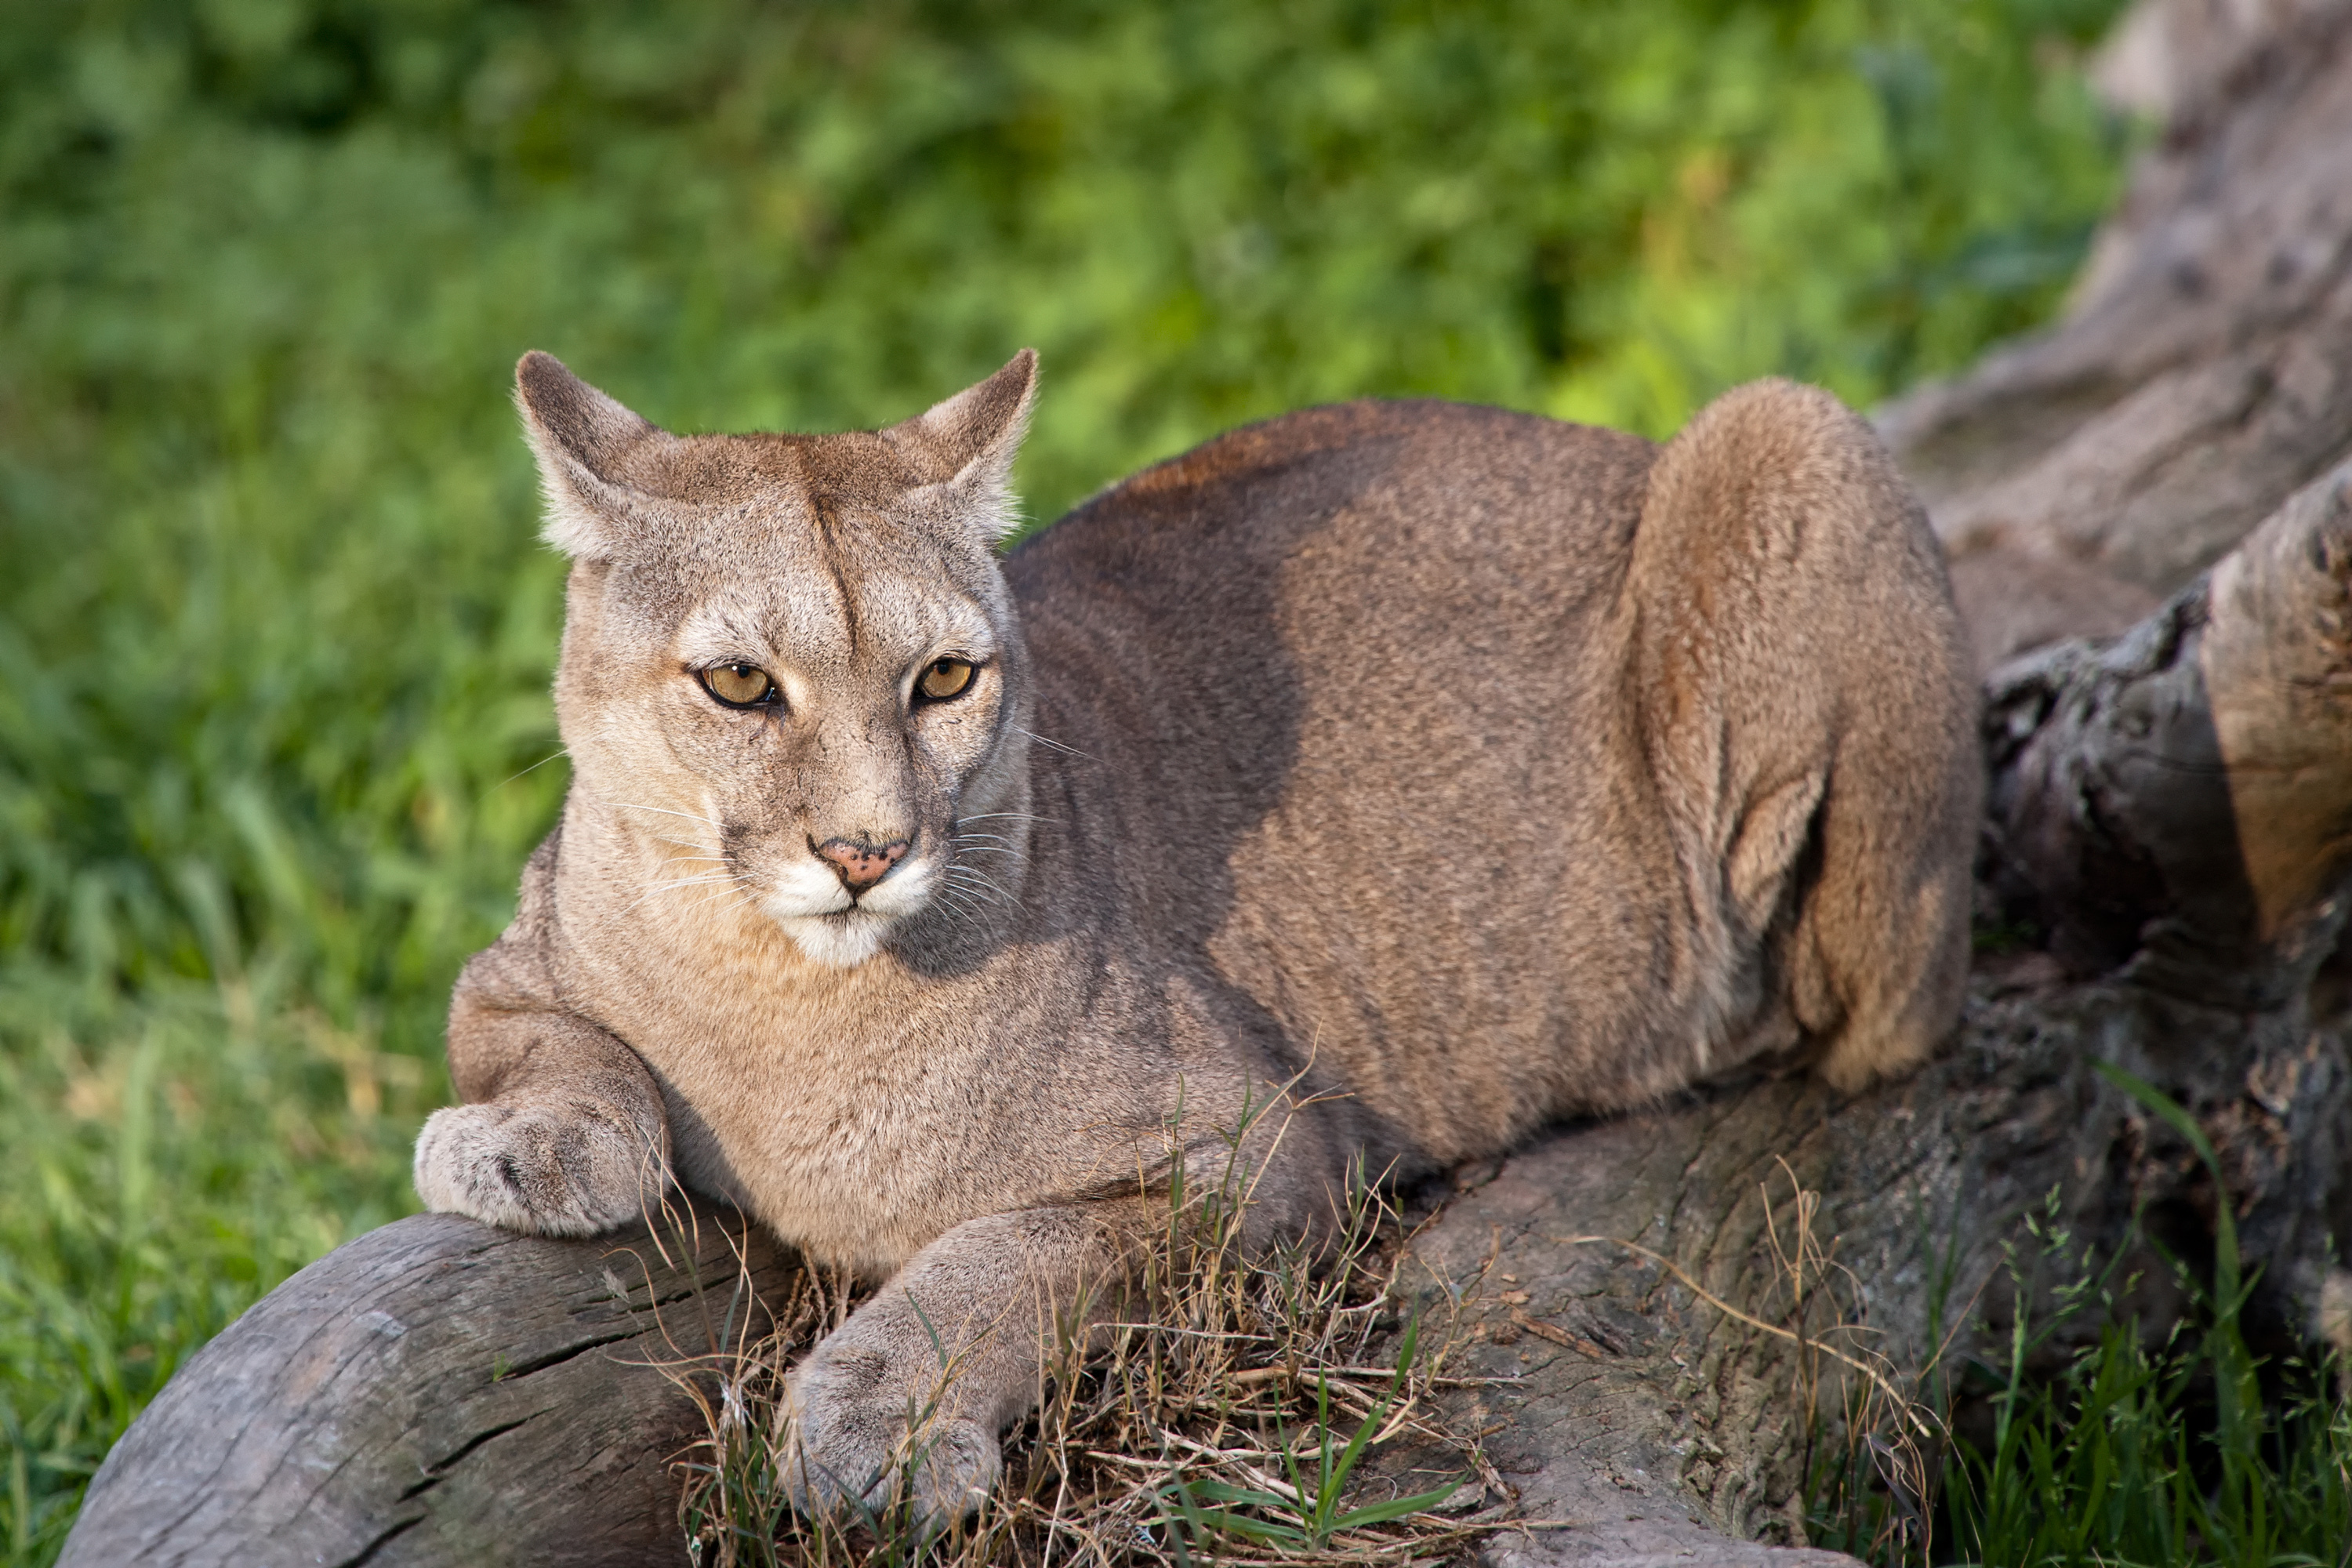 Patagonian Puma is one of the wildlife of Patagonia